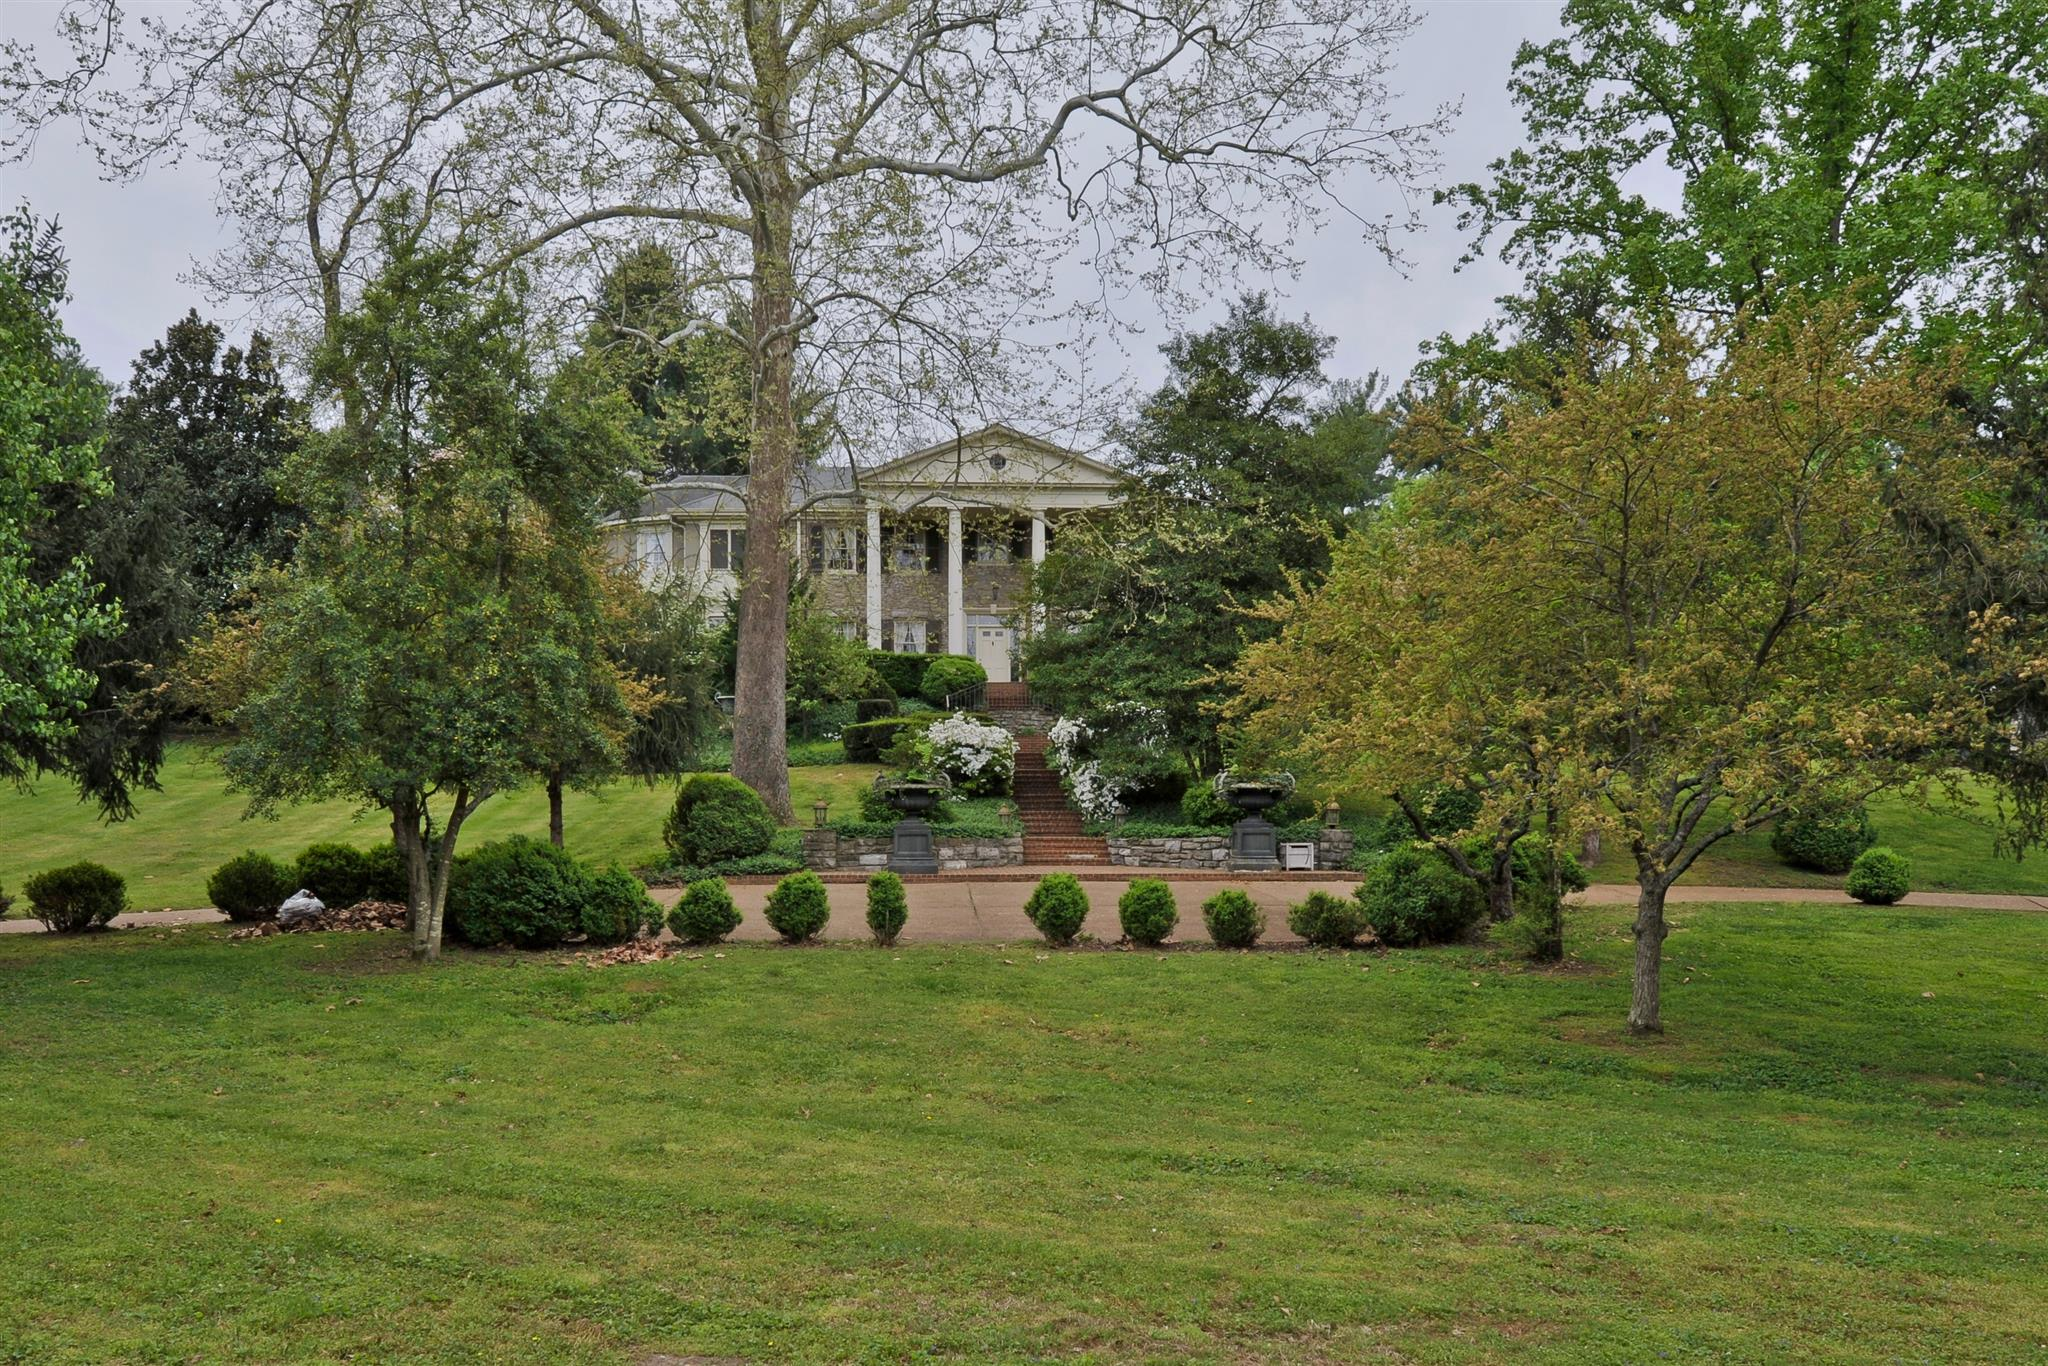 """Rare opportunity. """"Walnut Hill"""" estate features large stone home w/original hwds, mantels, & more on 21/2 lush acres w/ pool, pool hse, tennis/sports court. Banquet sized rooms flow easily for fantastic entertaining. Gorgeous views out every window."""